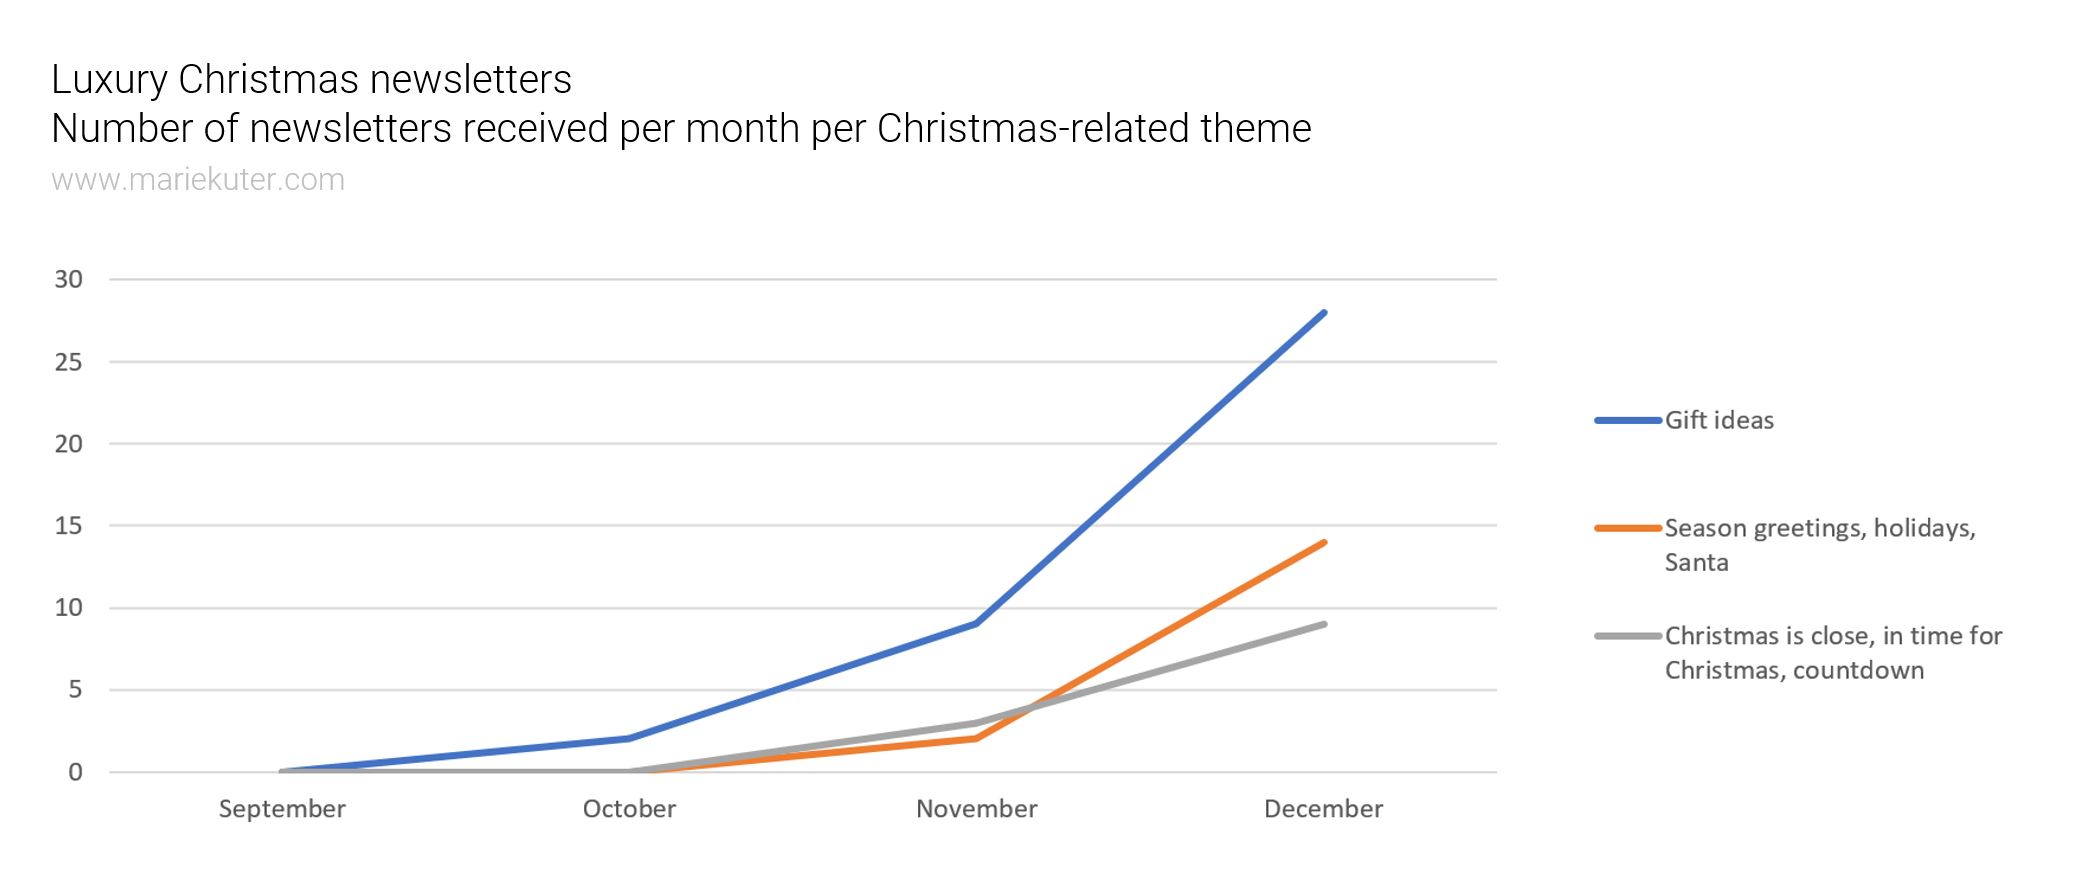 Luxury newsletters for Christmas: Number of related emails per month